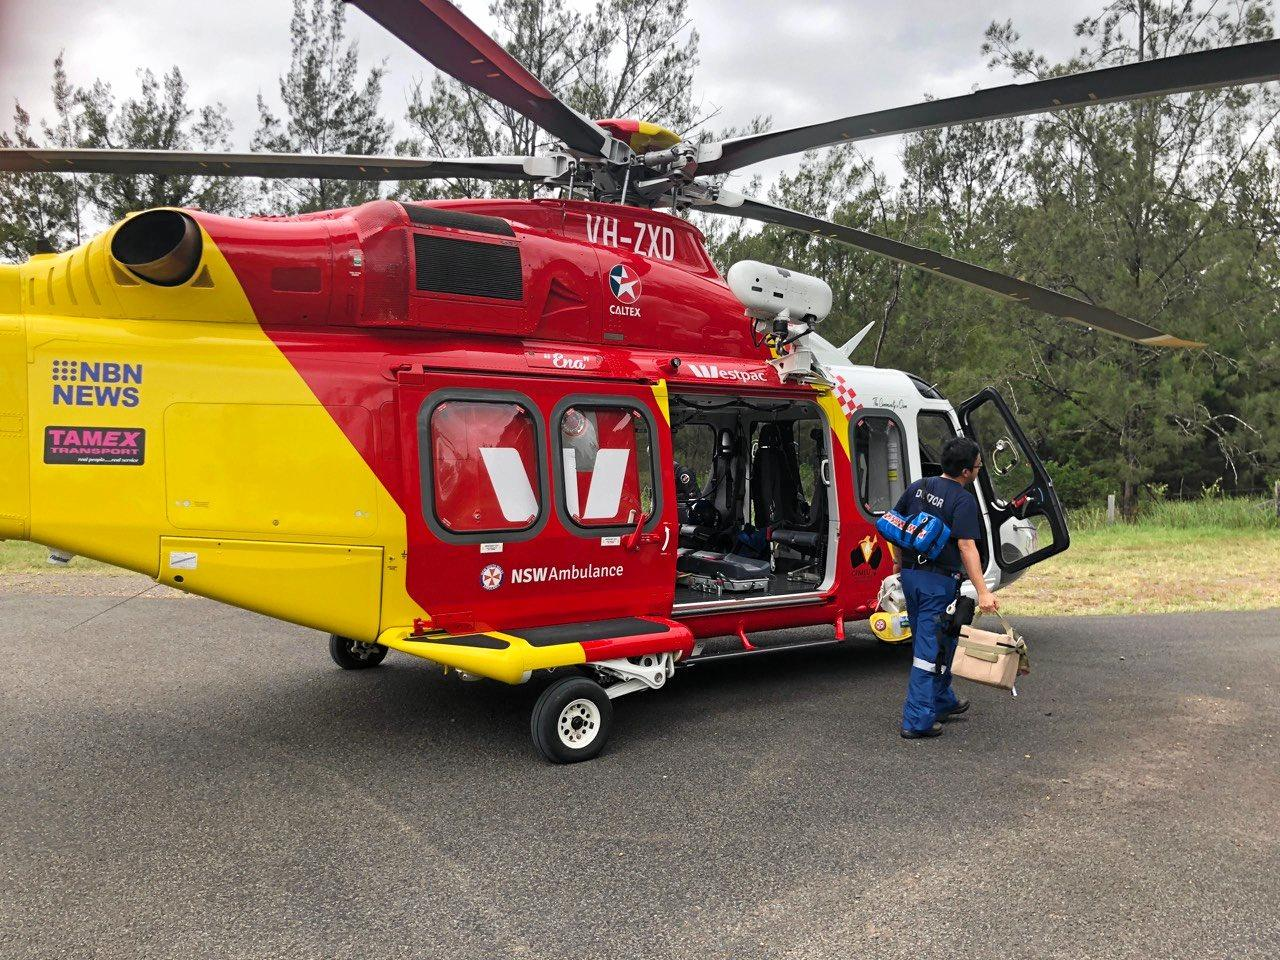 The Westpac Rescue Helicopter transported the female driver of a single vehicle collision at Fineflower to Lismore Base Hospital. The driver has been treated for serious internal injuries.